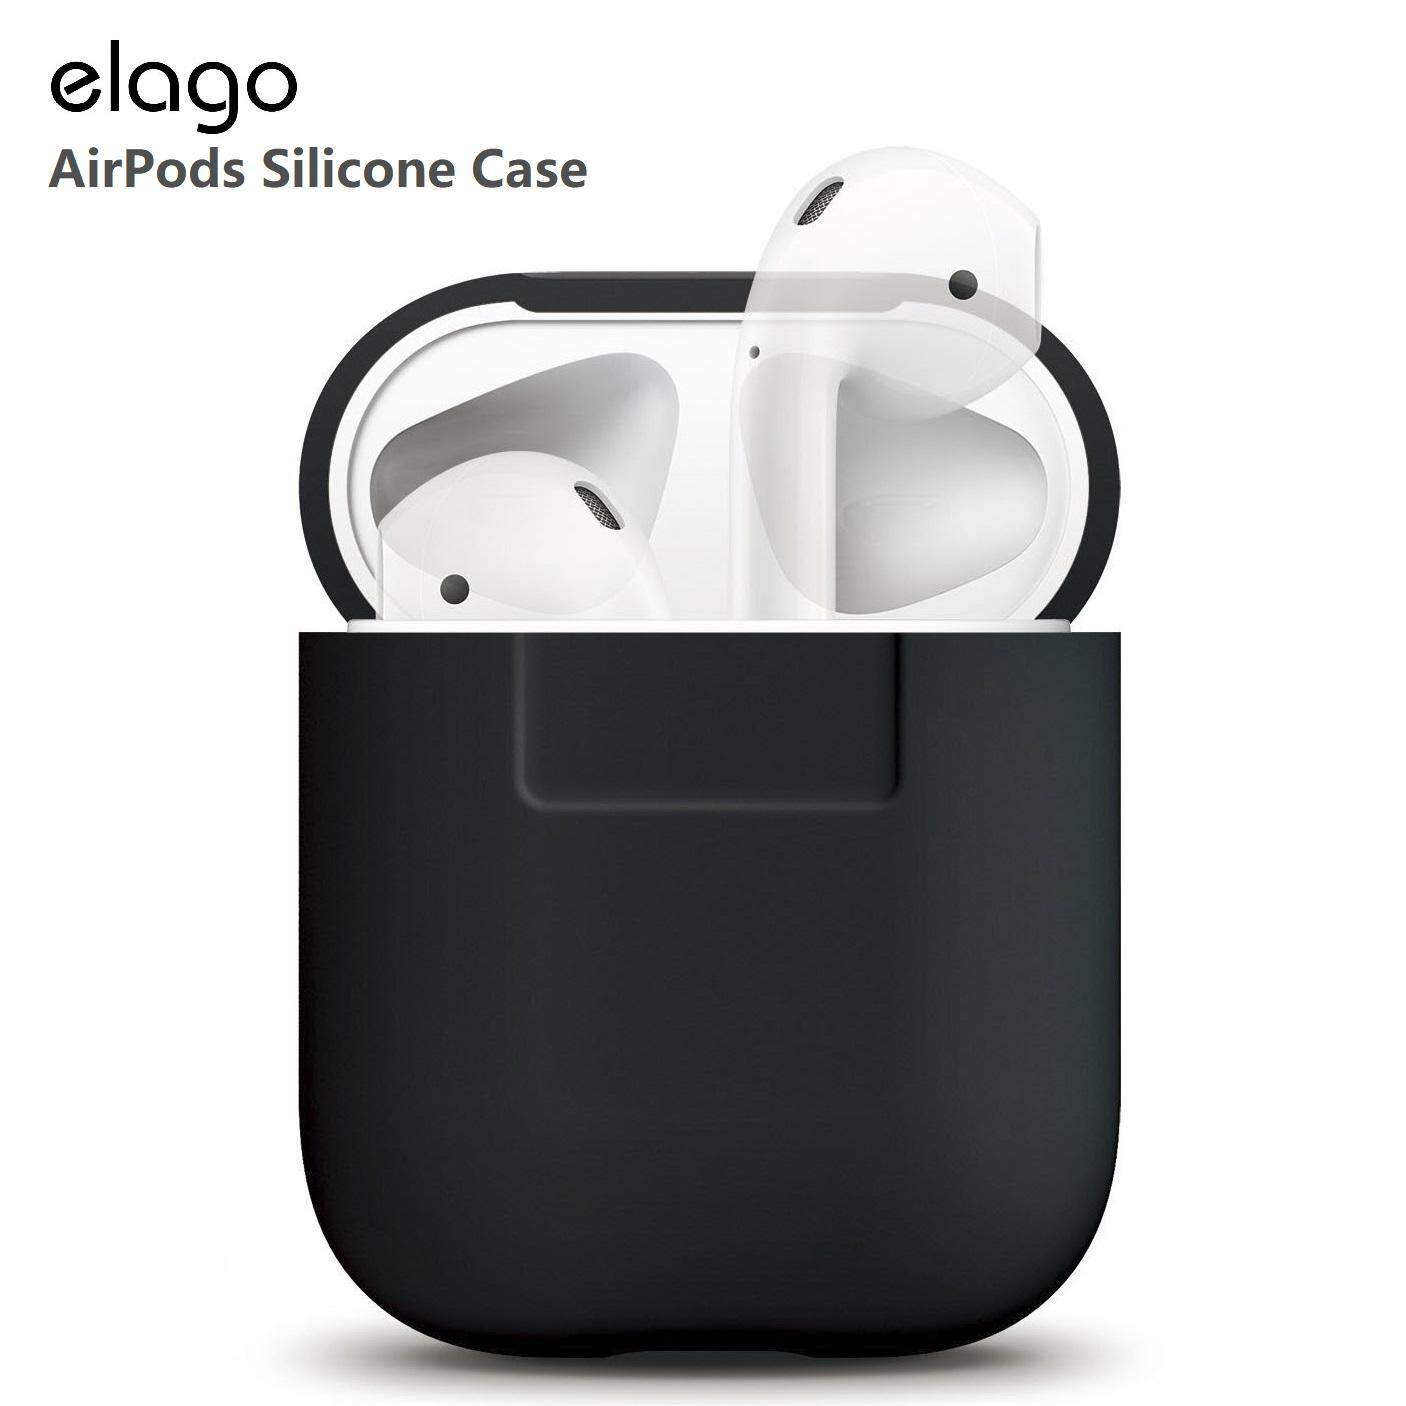 Elago AirPods Silicone Case for AirPods 1st and 2nd Generation Wired  Charging Version Apple AirPods 2 Colourful Protective Anti Scratch Perfect  Fit